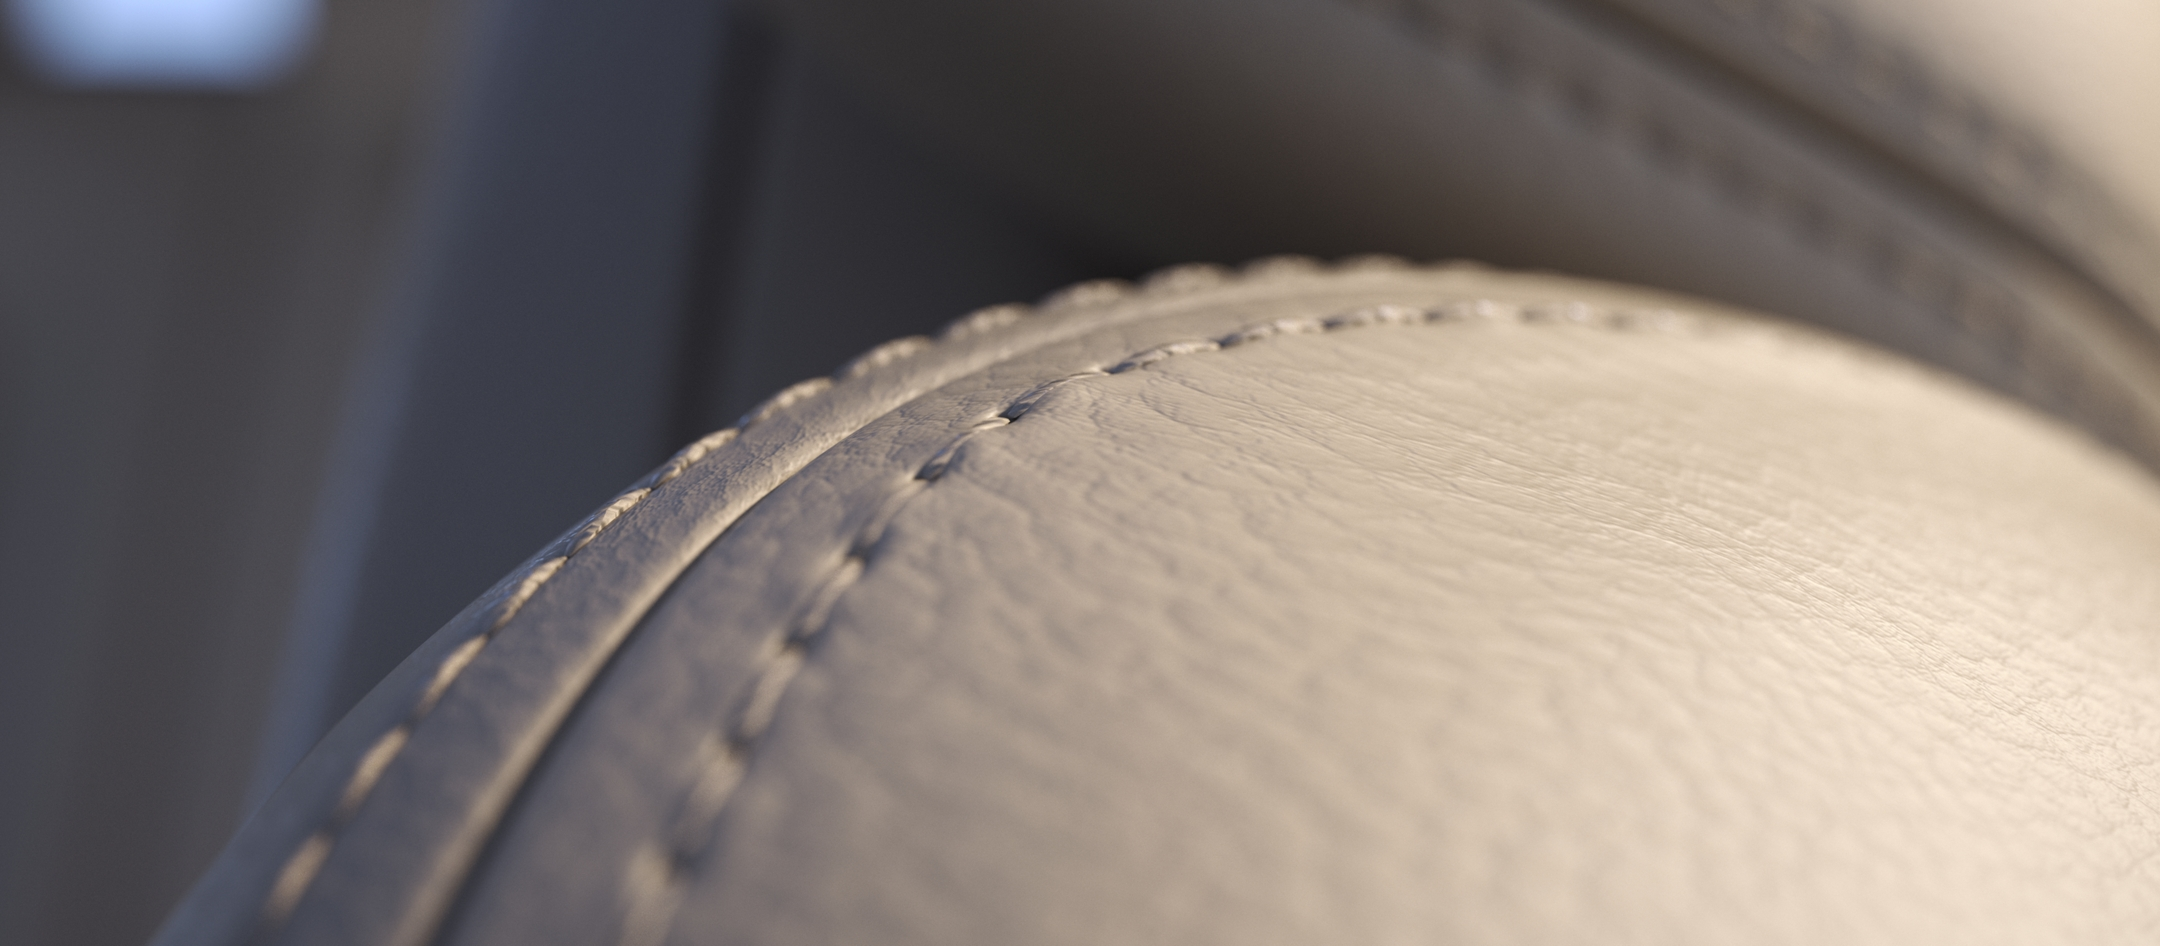 A close up view of seat stitching highlights close attention to detail within the Continental